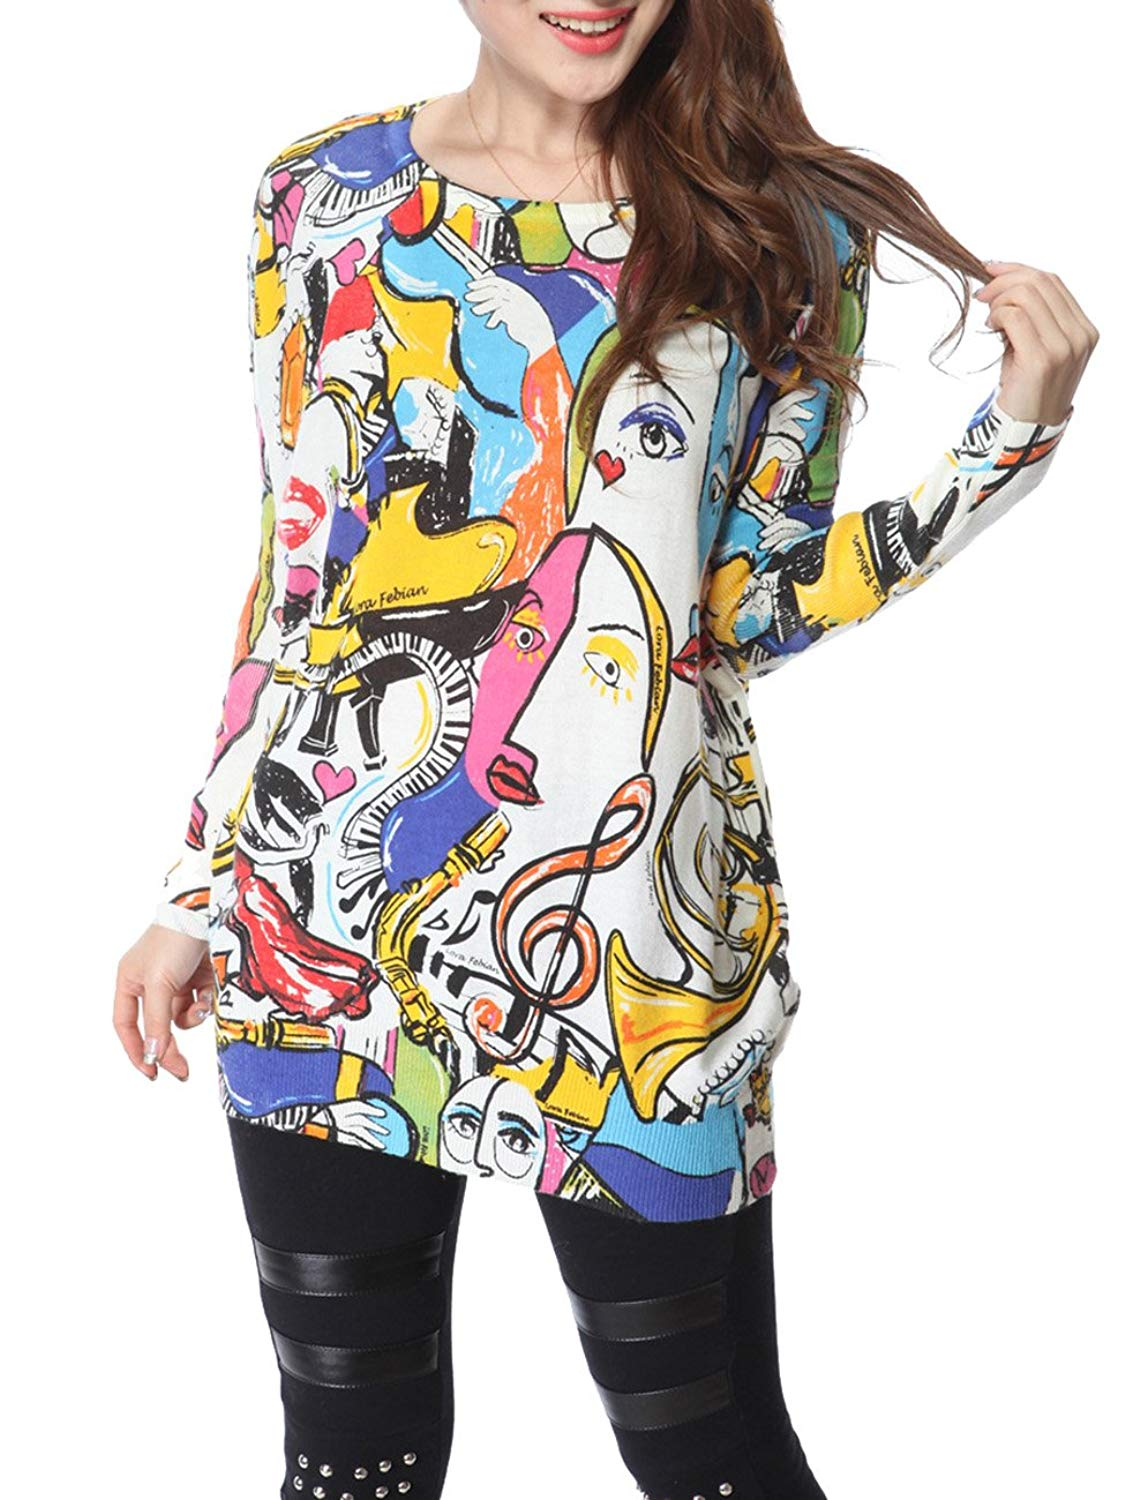 c34addbb0d630 Get Quotations · ELLAZHU Women Baggy Abstract Painting Knit Pullover Sweater  Onesize SZ38